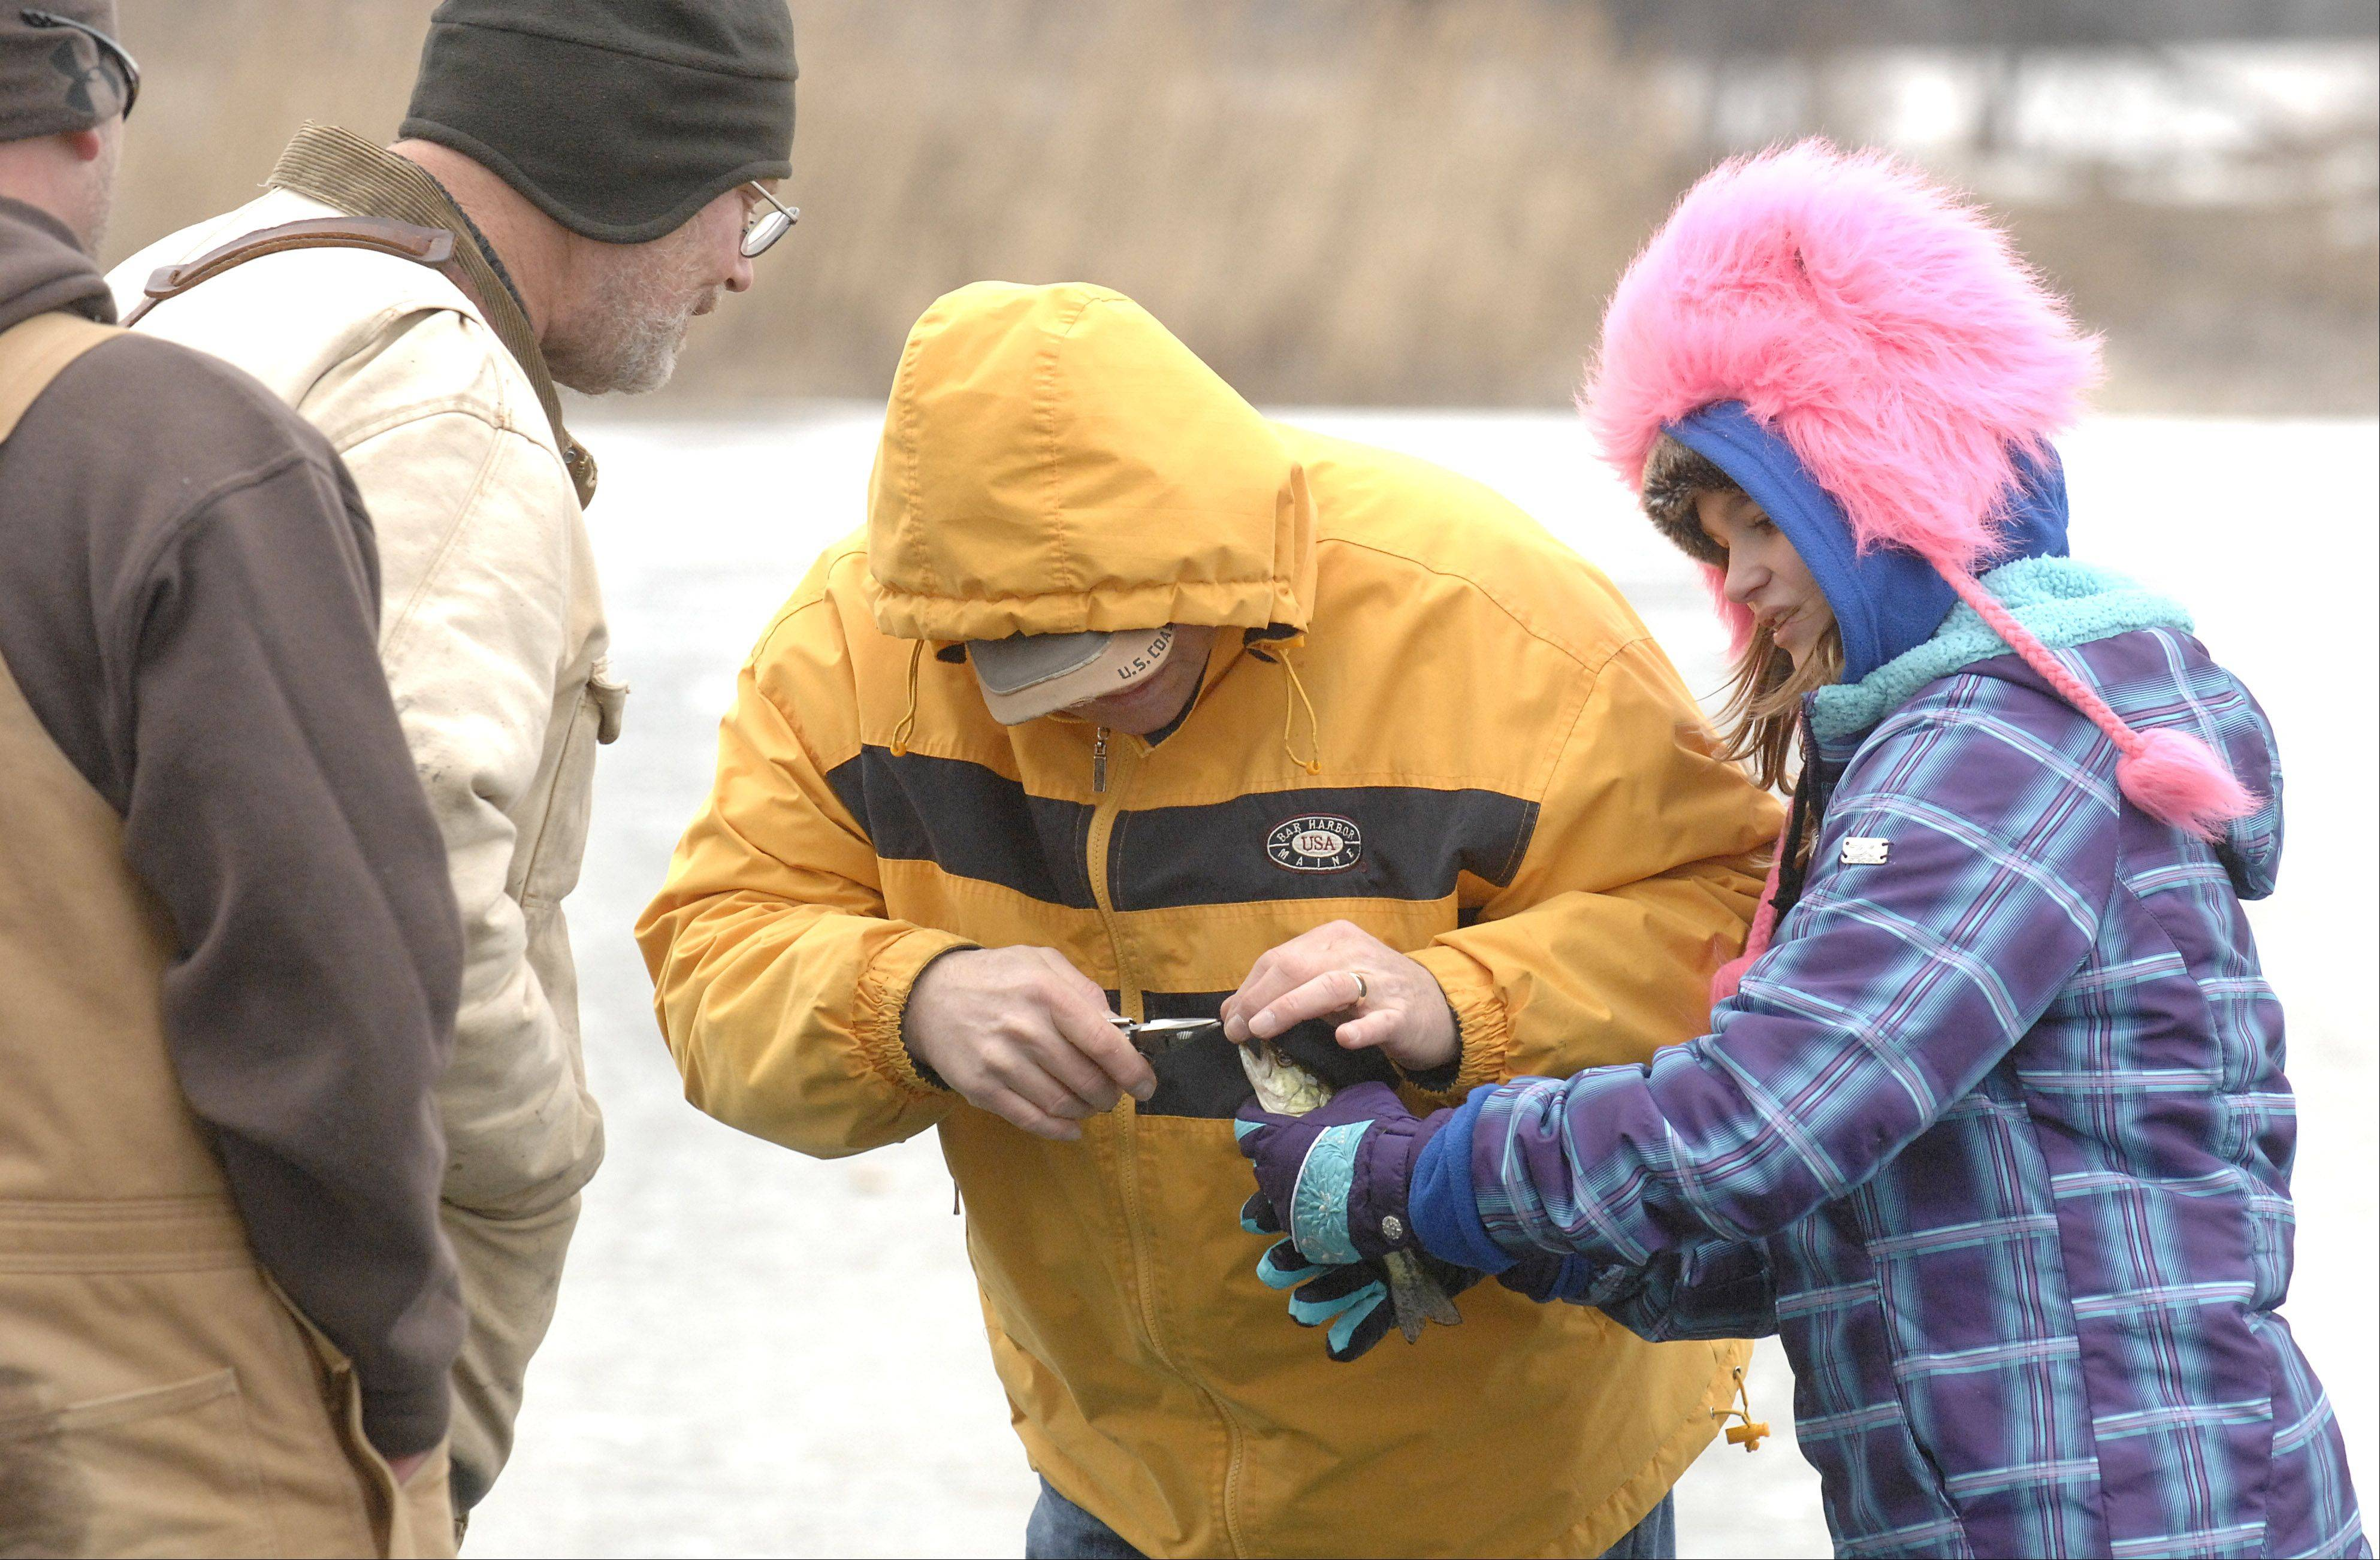 Robert Blass of Lake Zurich helps his granddaughter, Pam McLean, 14, of Wauconda, take a hook out of a fish she caught Saturday during the McHenry Conservation District's Frost Fishing Fair in Cary. They quickly released the fish back into Lake Atwood.